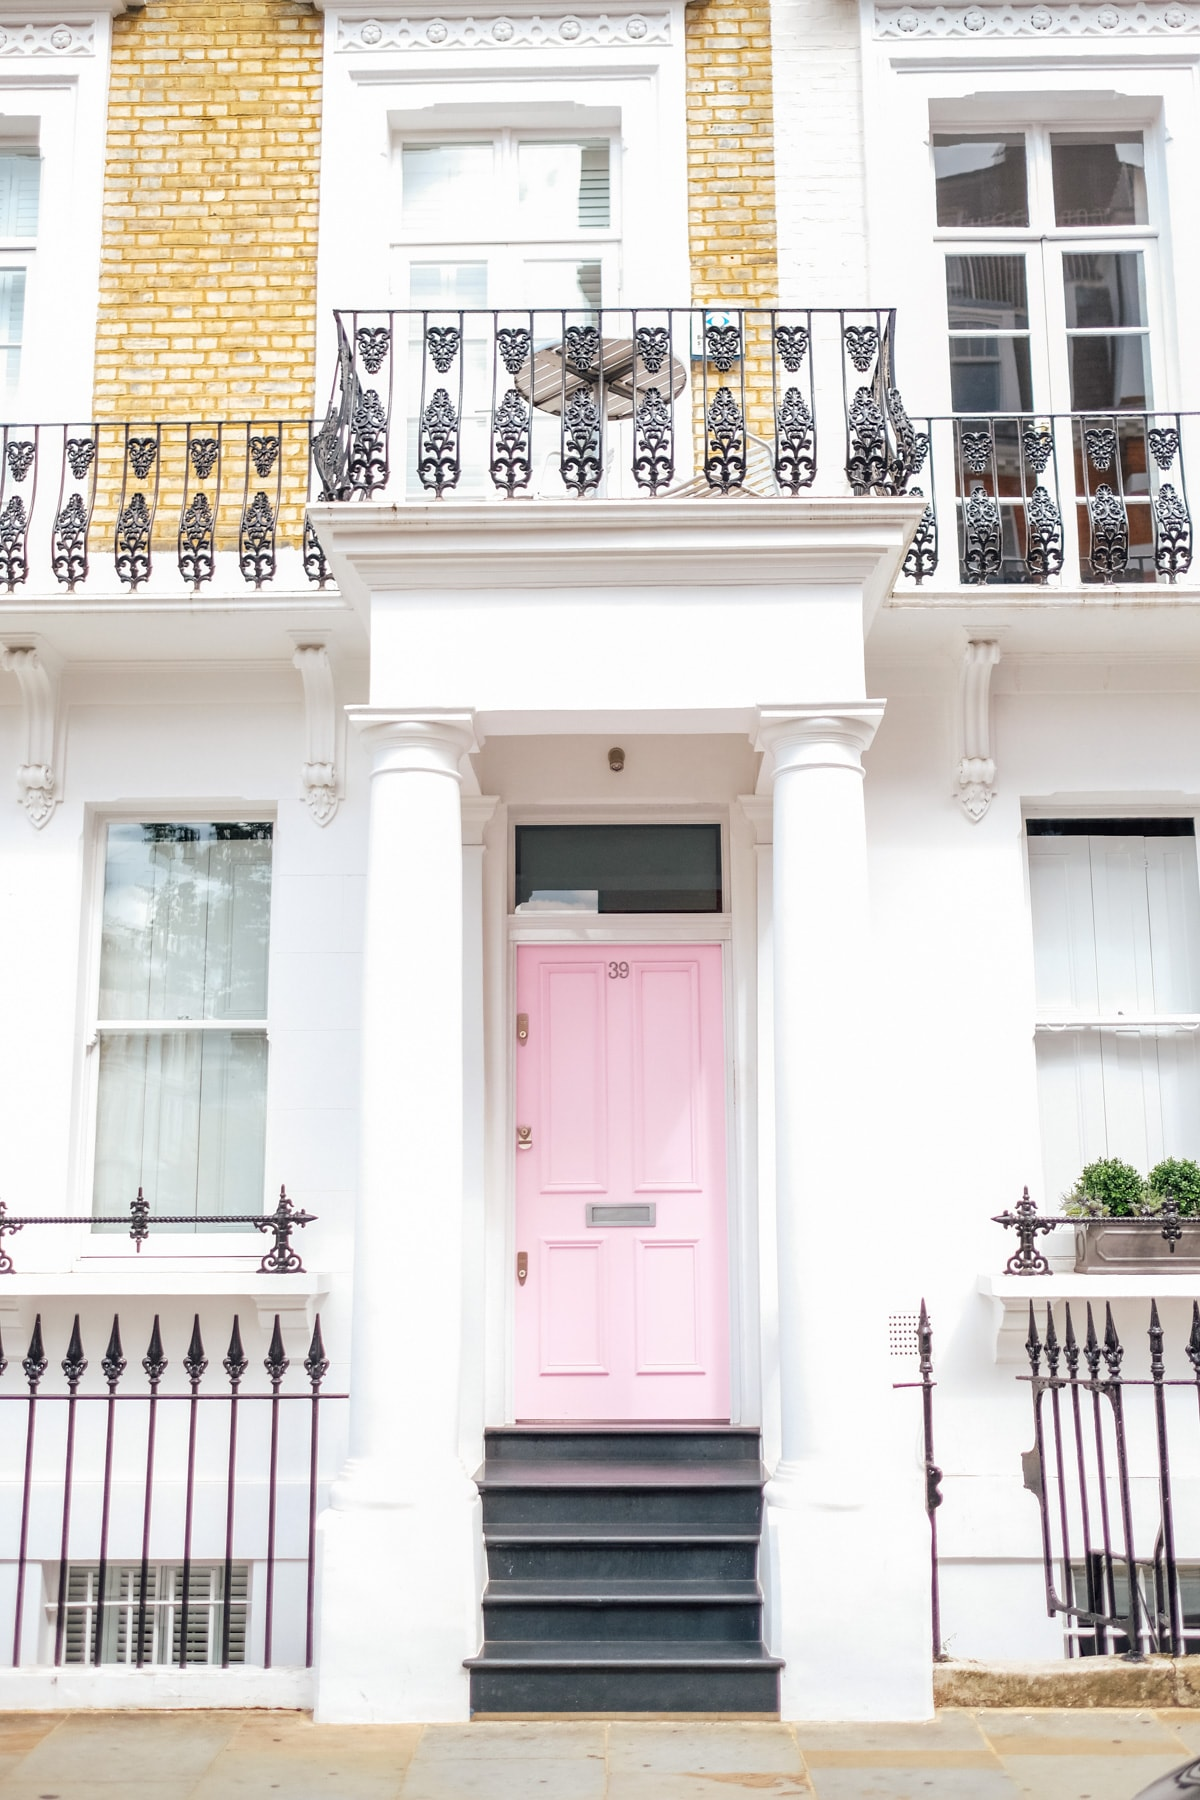 Pink front door in Nottinghill London! Photos of Our British Isles Cruise with Family! | Part 1 # travel #familytravel #cruise #decor #design #britishisles